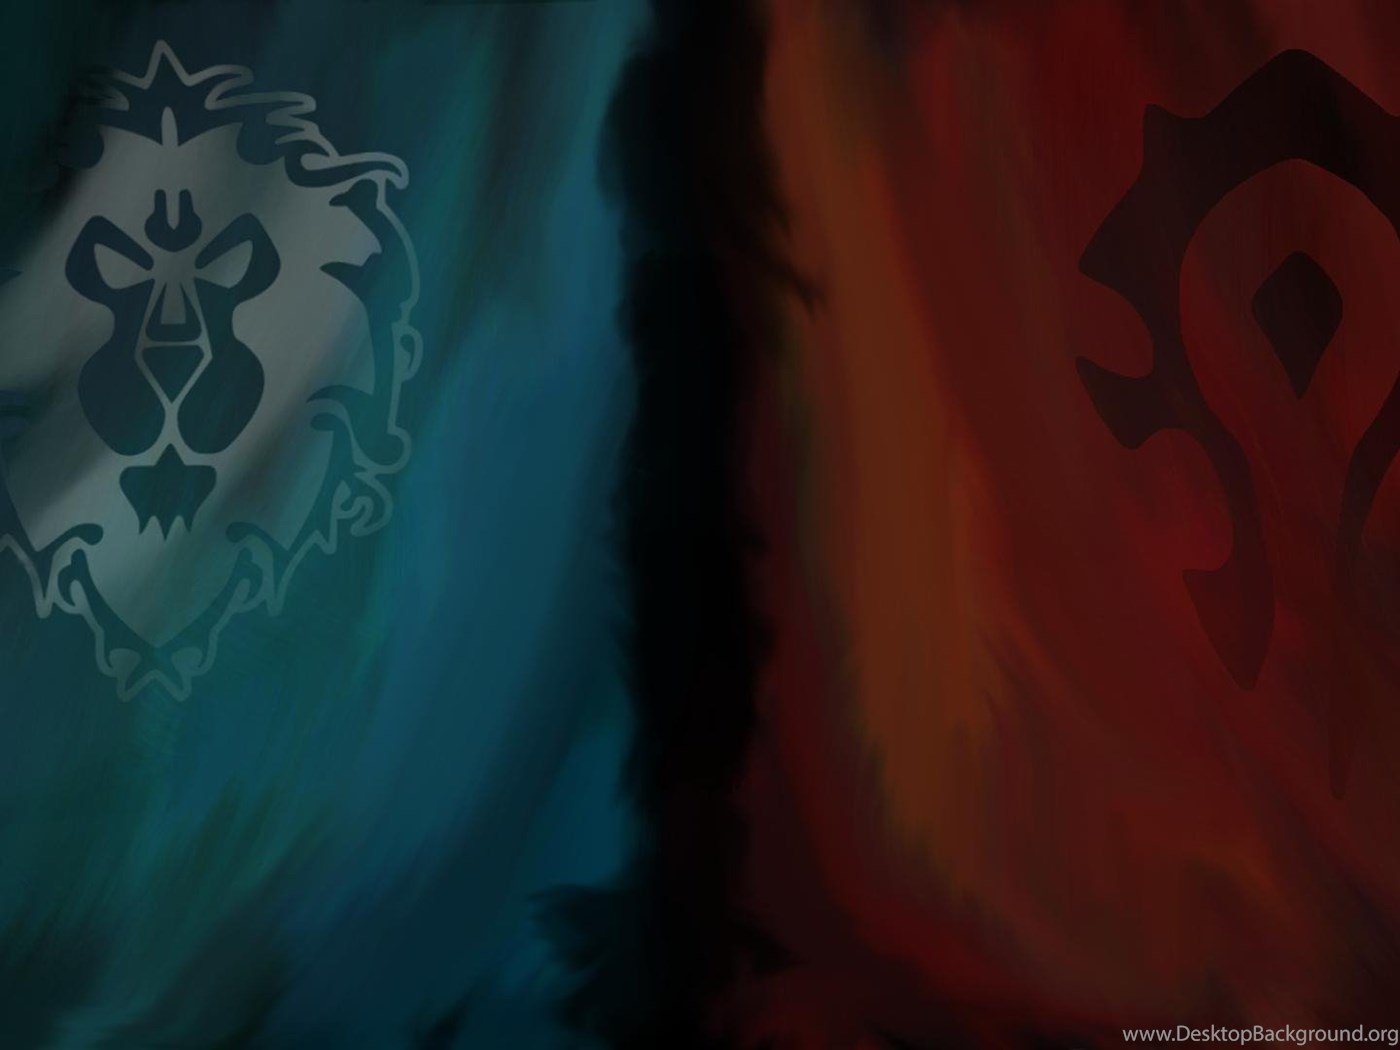 Larger Alliance And Horde Backgrounds As Requested 1920x1080 Wow Desktop Background